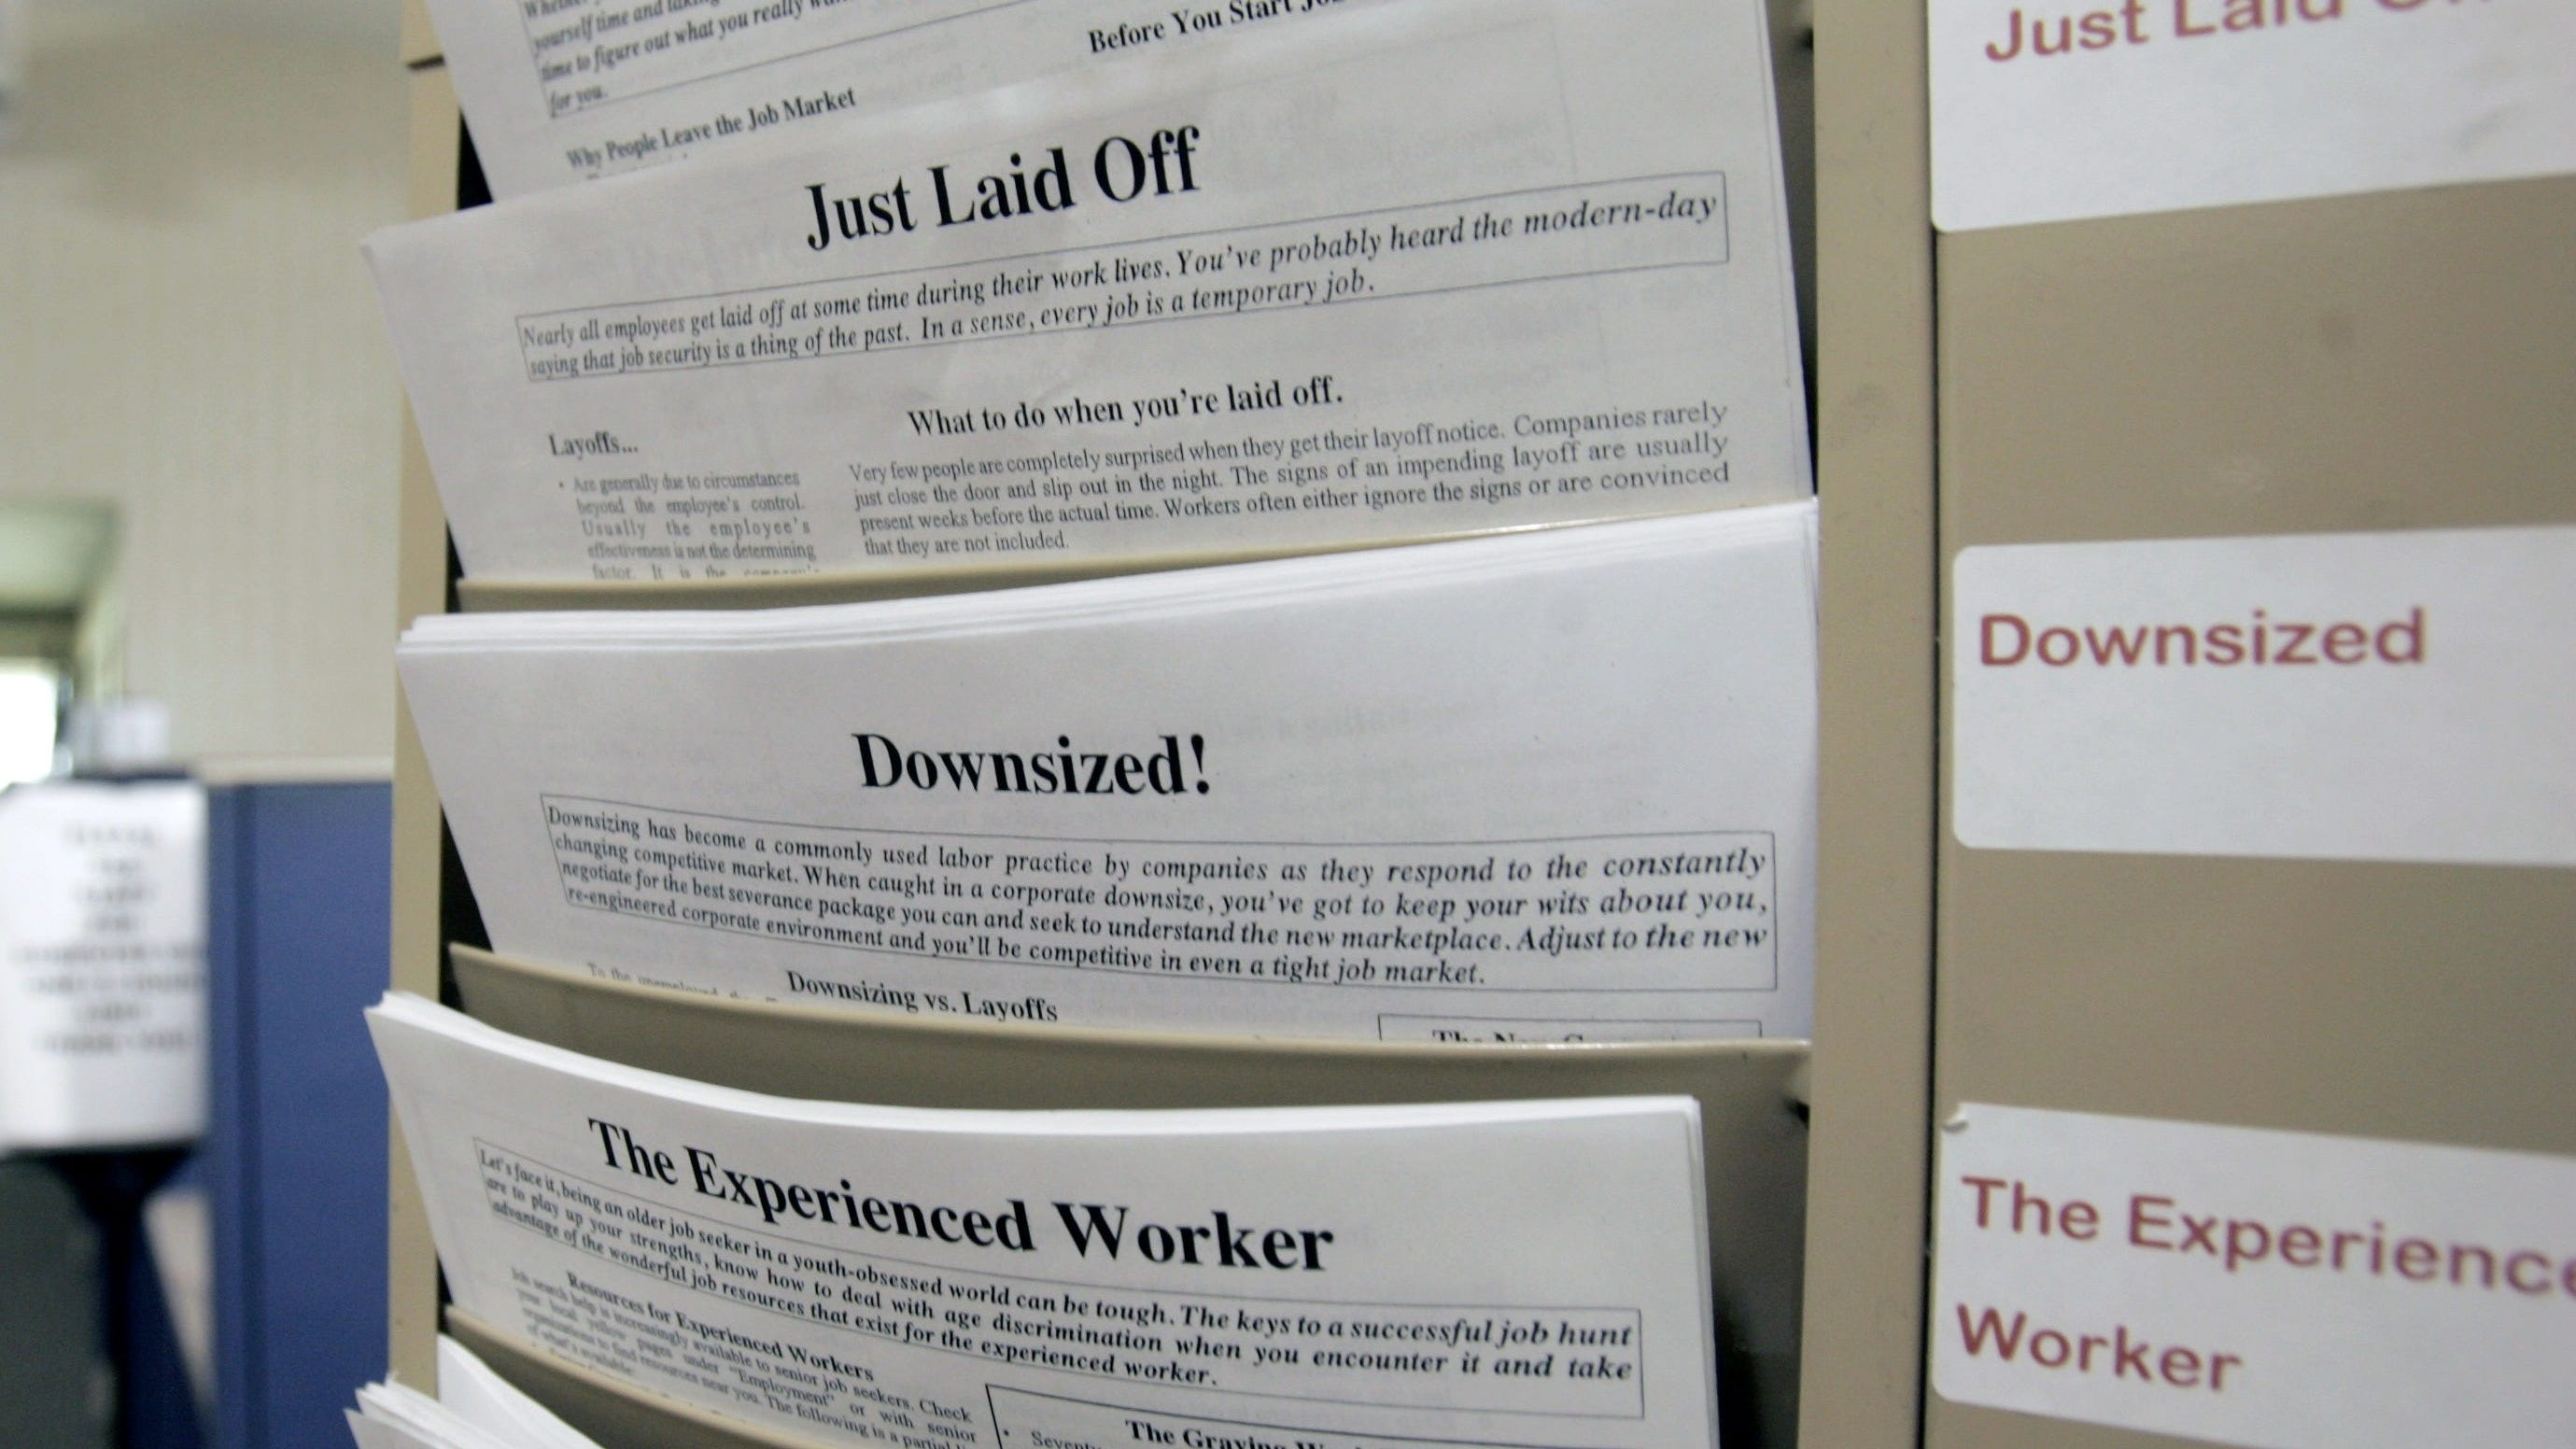 Millions of new unemployment claims expected as layoffs continue to rise